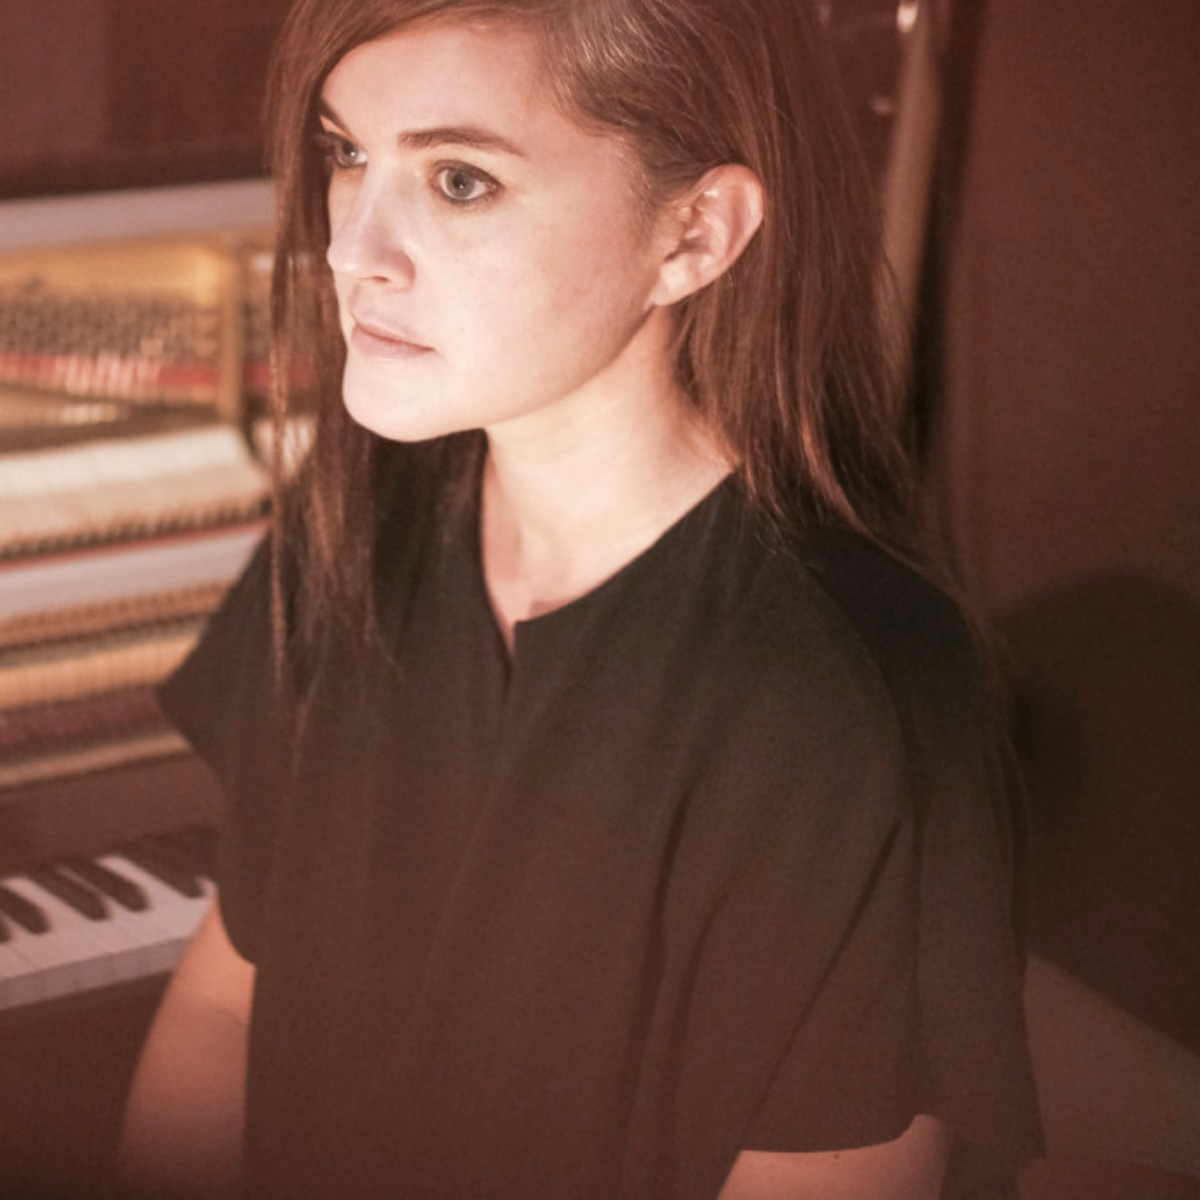 PREVIEW: Julianna Barwick @ Terminal 5 on 9/22